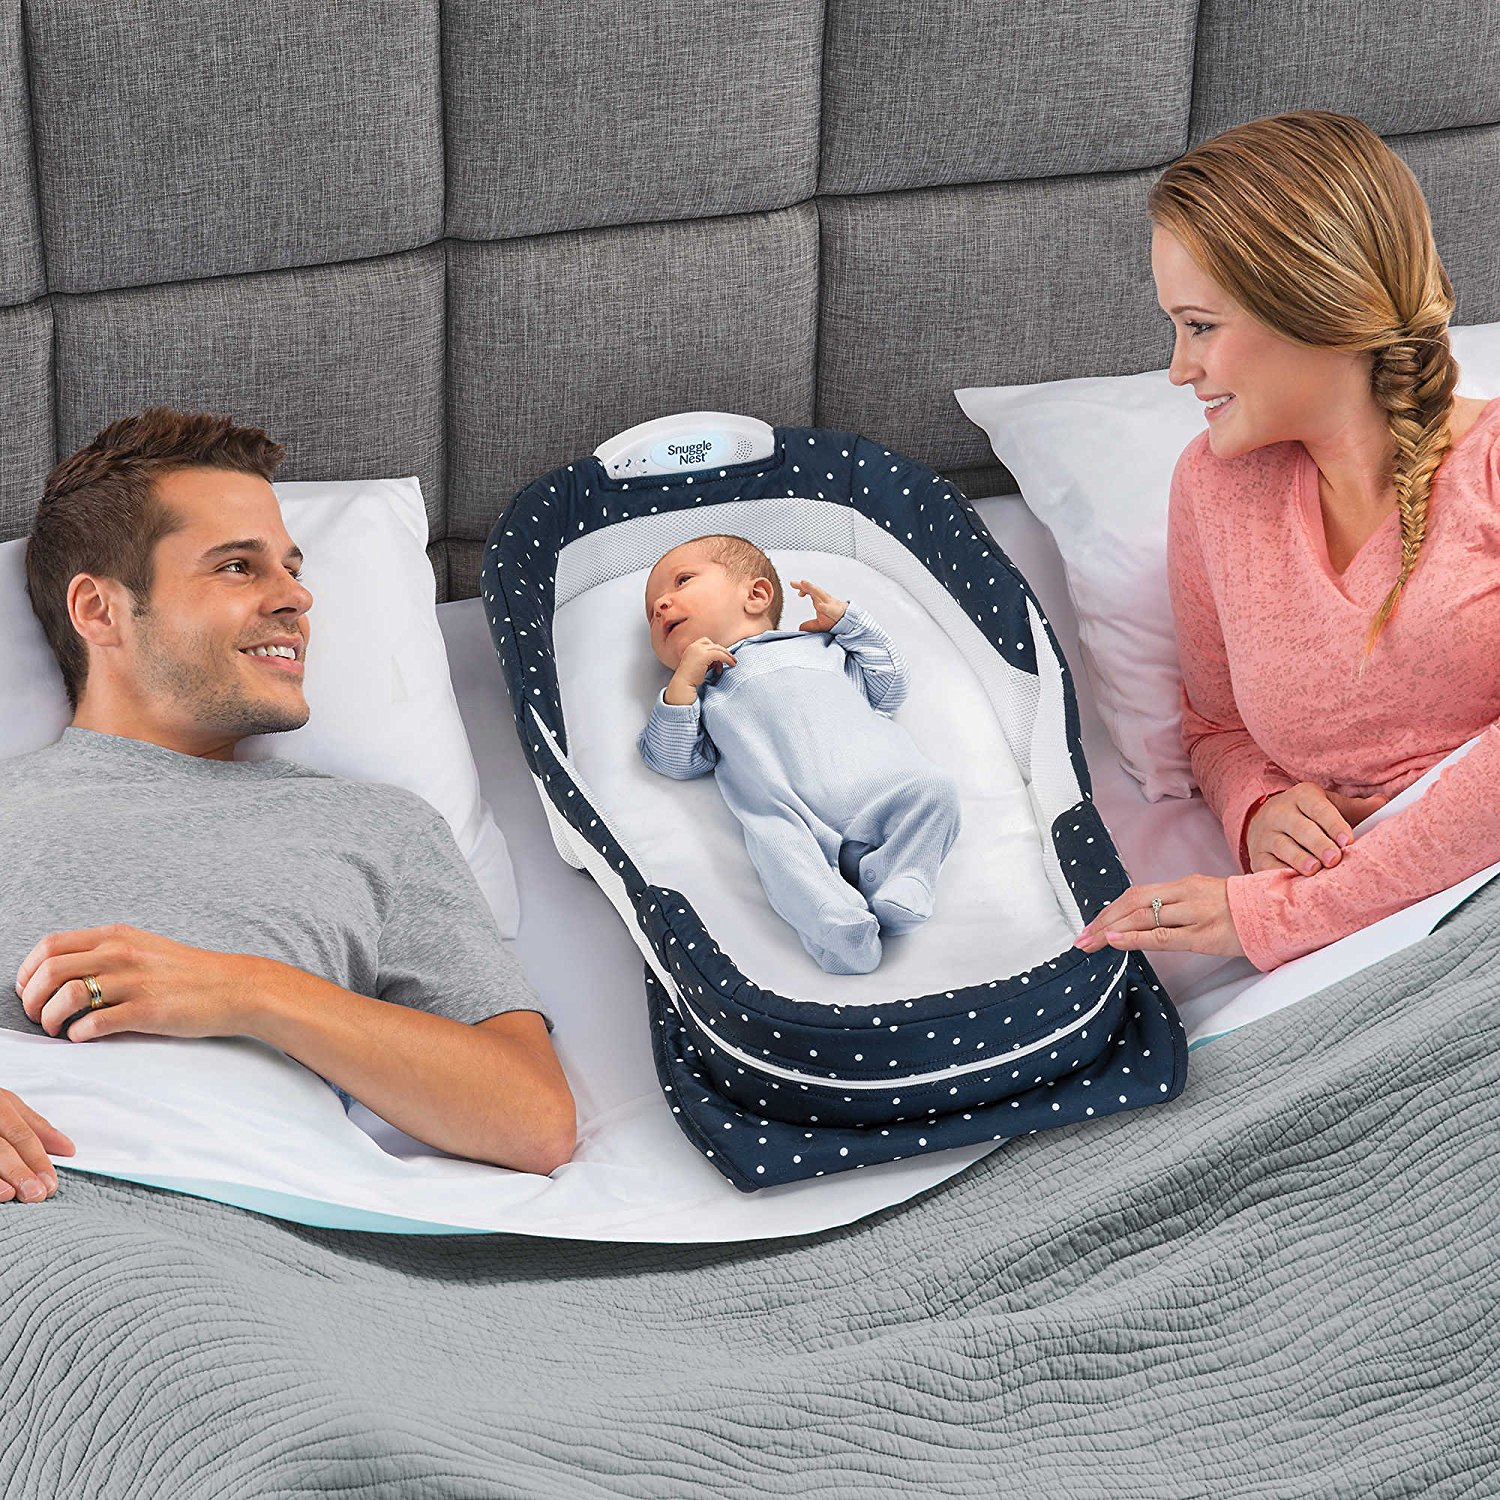 Baby Delight Snuggle Nest Surround Extra-Long Portable Infant Sleeper in Navy Swiss